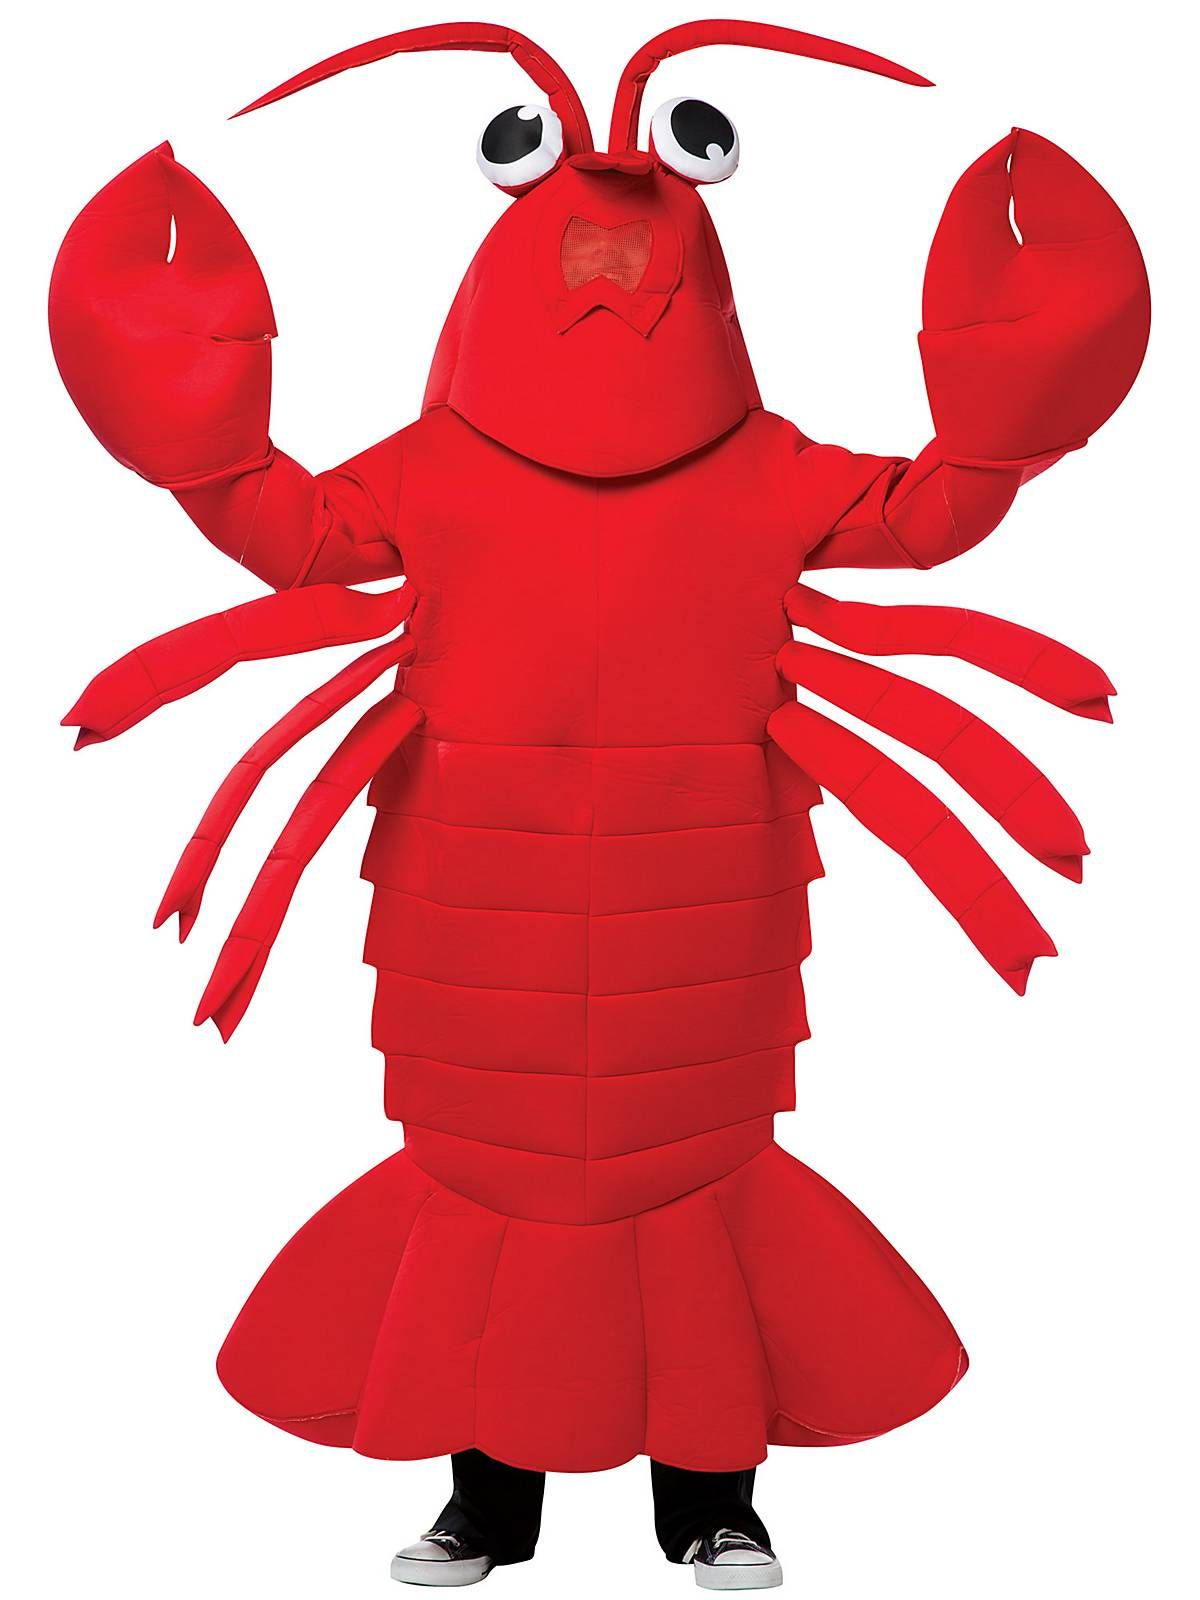 Lobster mascot costume wholesale new for 2015 costumes